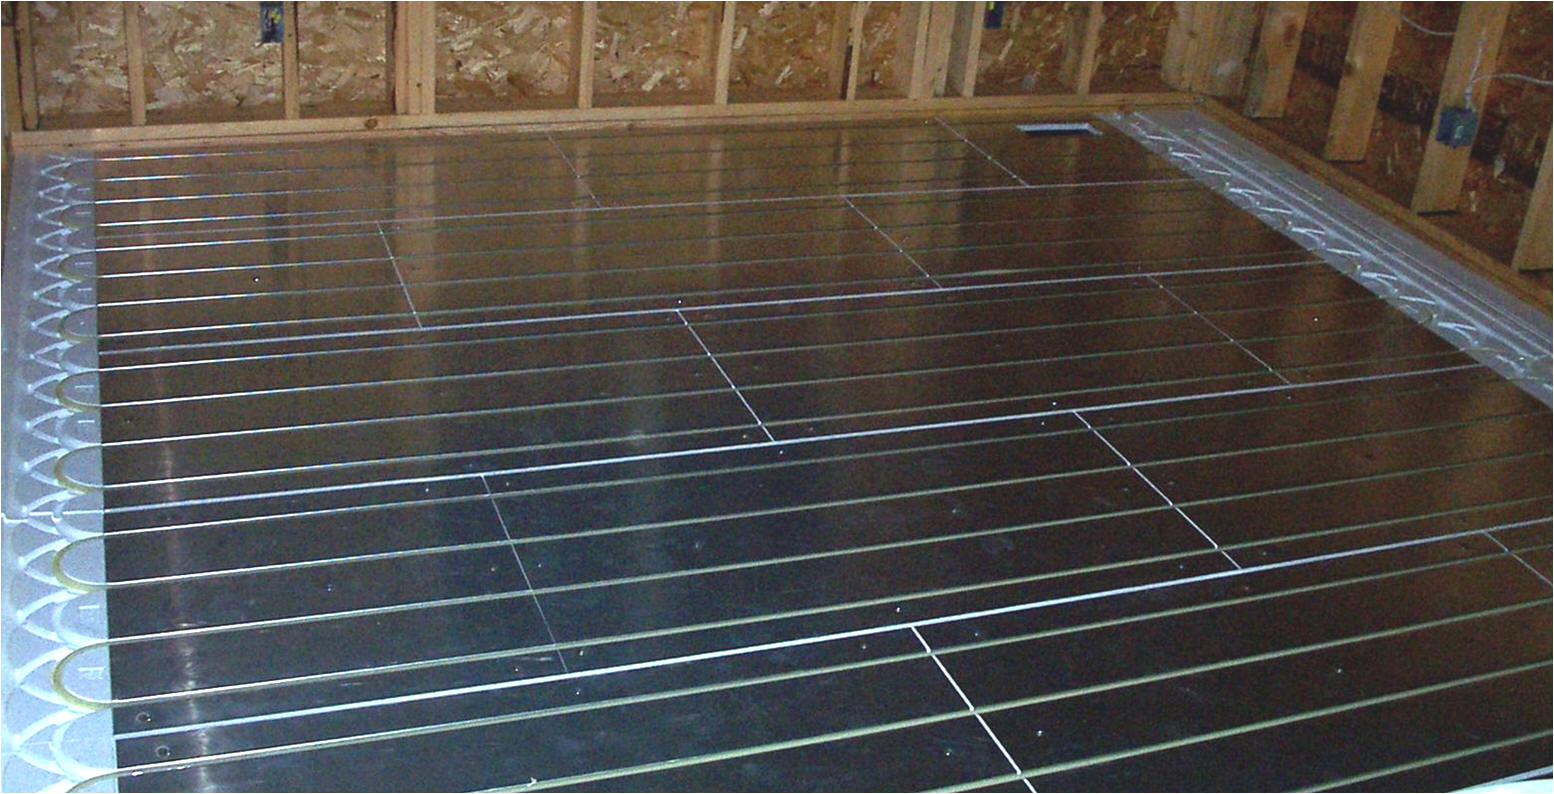 Radiant heating installations the good bad and ugly Radiant floors